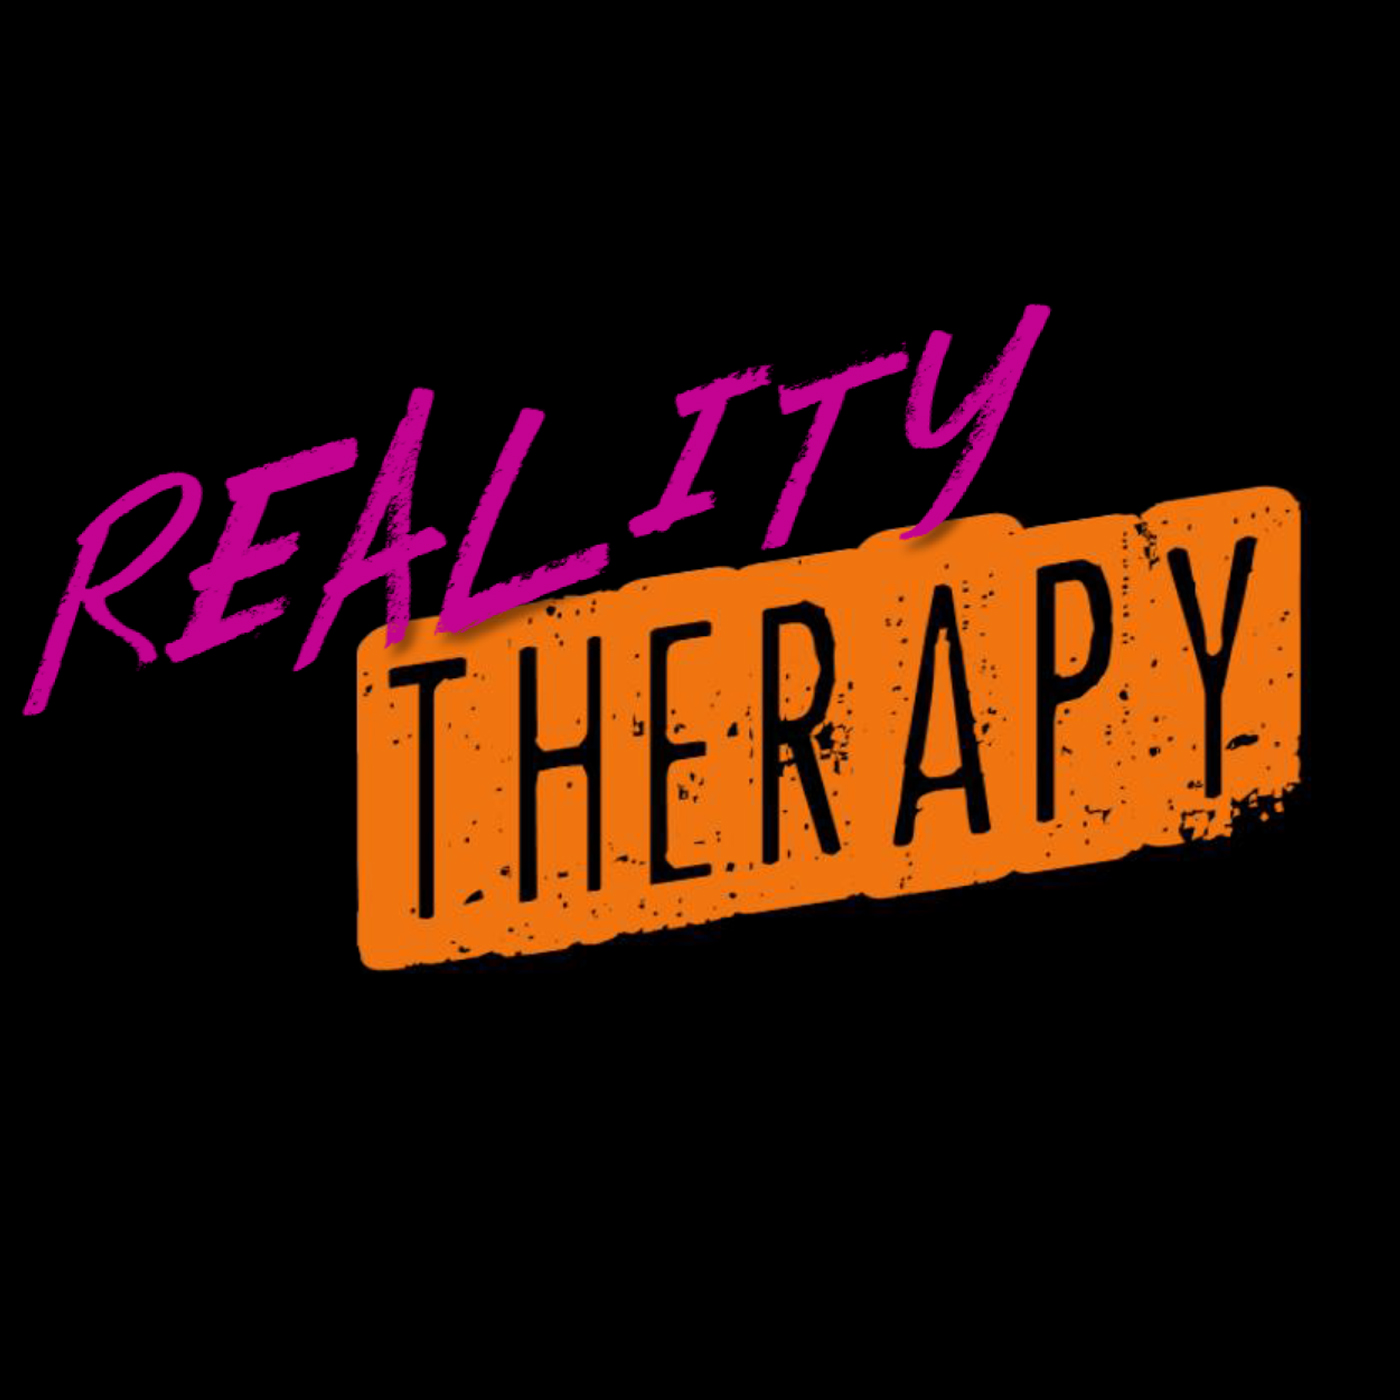 REALITY THERAPY - Hosted by Danny Passman and Lauren Burger, executive producers and casting agents for unscripted television. Get to know these creatives who develop shows for Bravo, Discovery, TLC, Travel, Food Network, and VH1 as they chat process and recant war stories with in-studio industry guests, plus take live calls from potential talent in casting interviews. Subscribe now!#realitytherapy #realitytv #crybabymedia@passmand @lmb513 @crybabymedia